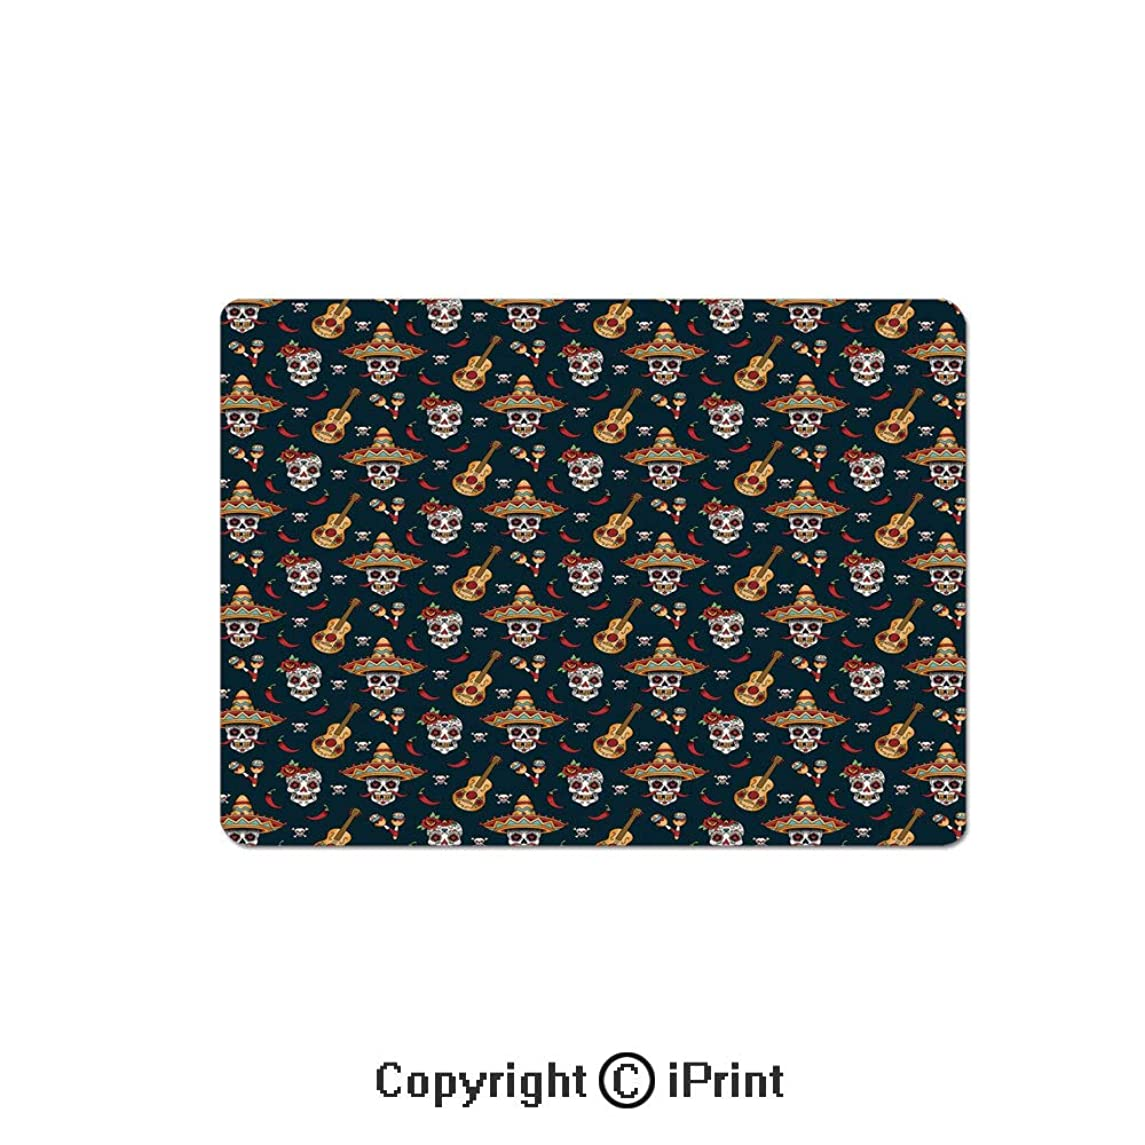 Thick 3mm Gaming Mouse Pad Detailed Artistic Floral Sugar Skulls with Sombrero Hats Chili Peppers and Guitars Personality Design Non Slip Rubber Mouse Mat,7.1x8.7 inch,Multicolor